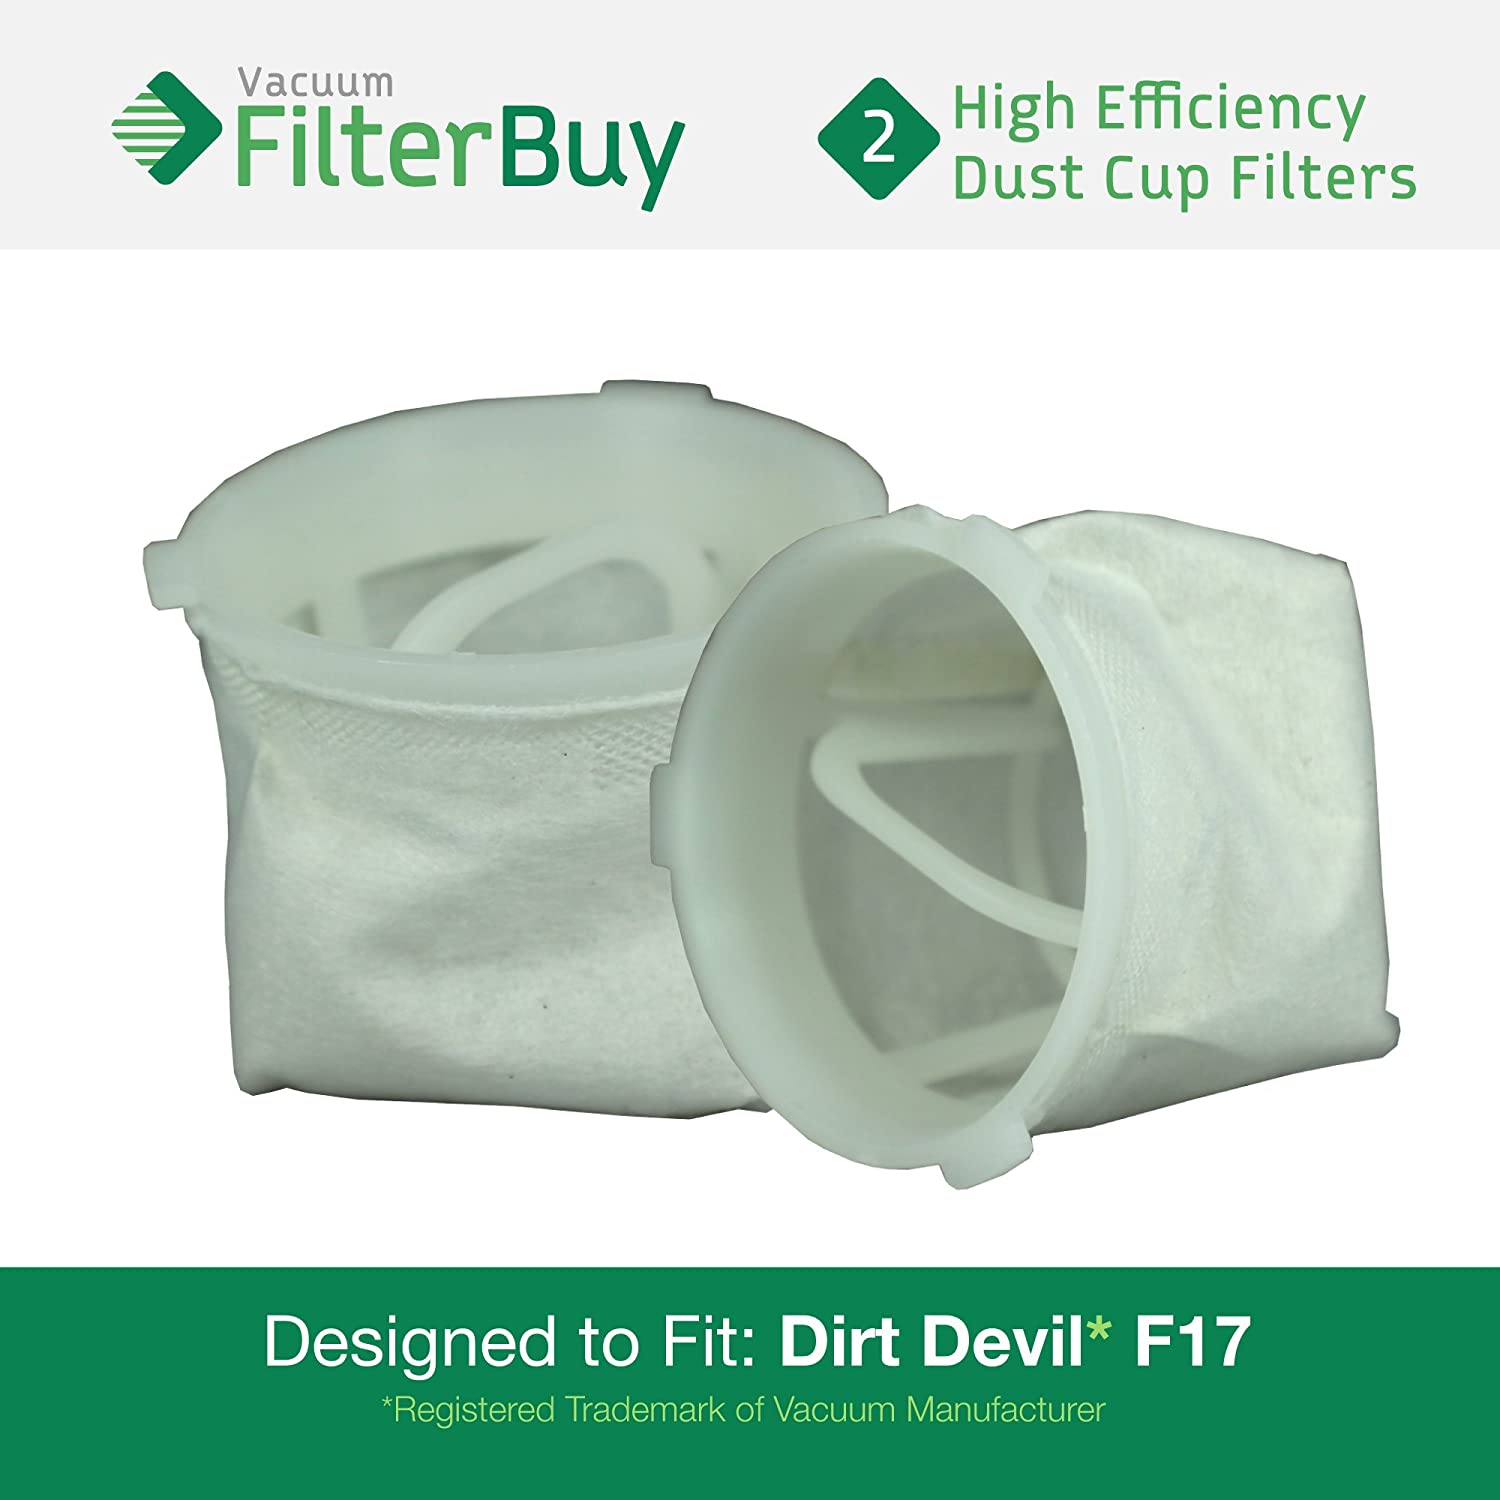 2 - FilterBuy Dirt Devil F-17 (F17) Dust Cup Replacement Filters, Part # 3DN0980000 (3-DN0980-000). Designed by FilterBuy to fit Dirt Devil KONE and KURV Hand Held Vacuum Cleaners